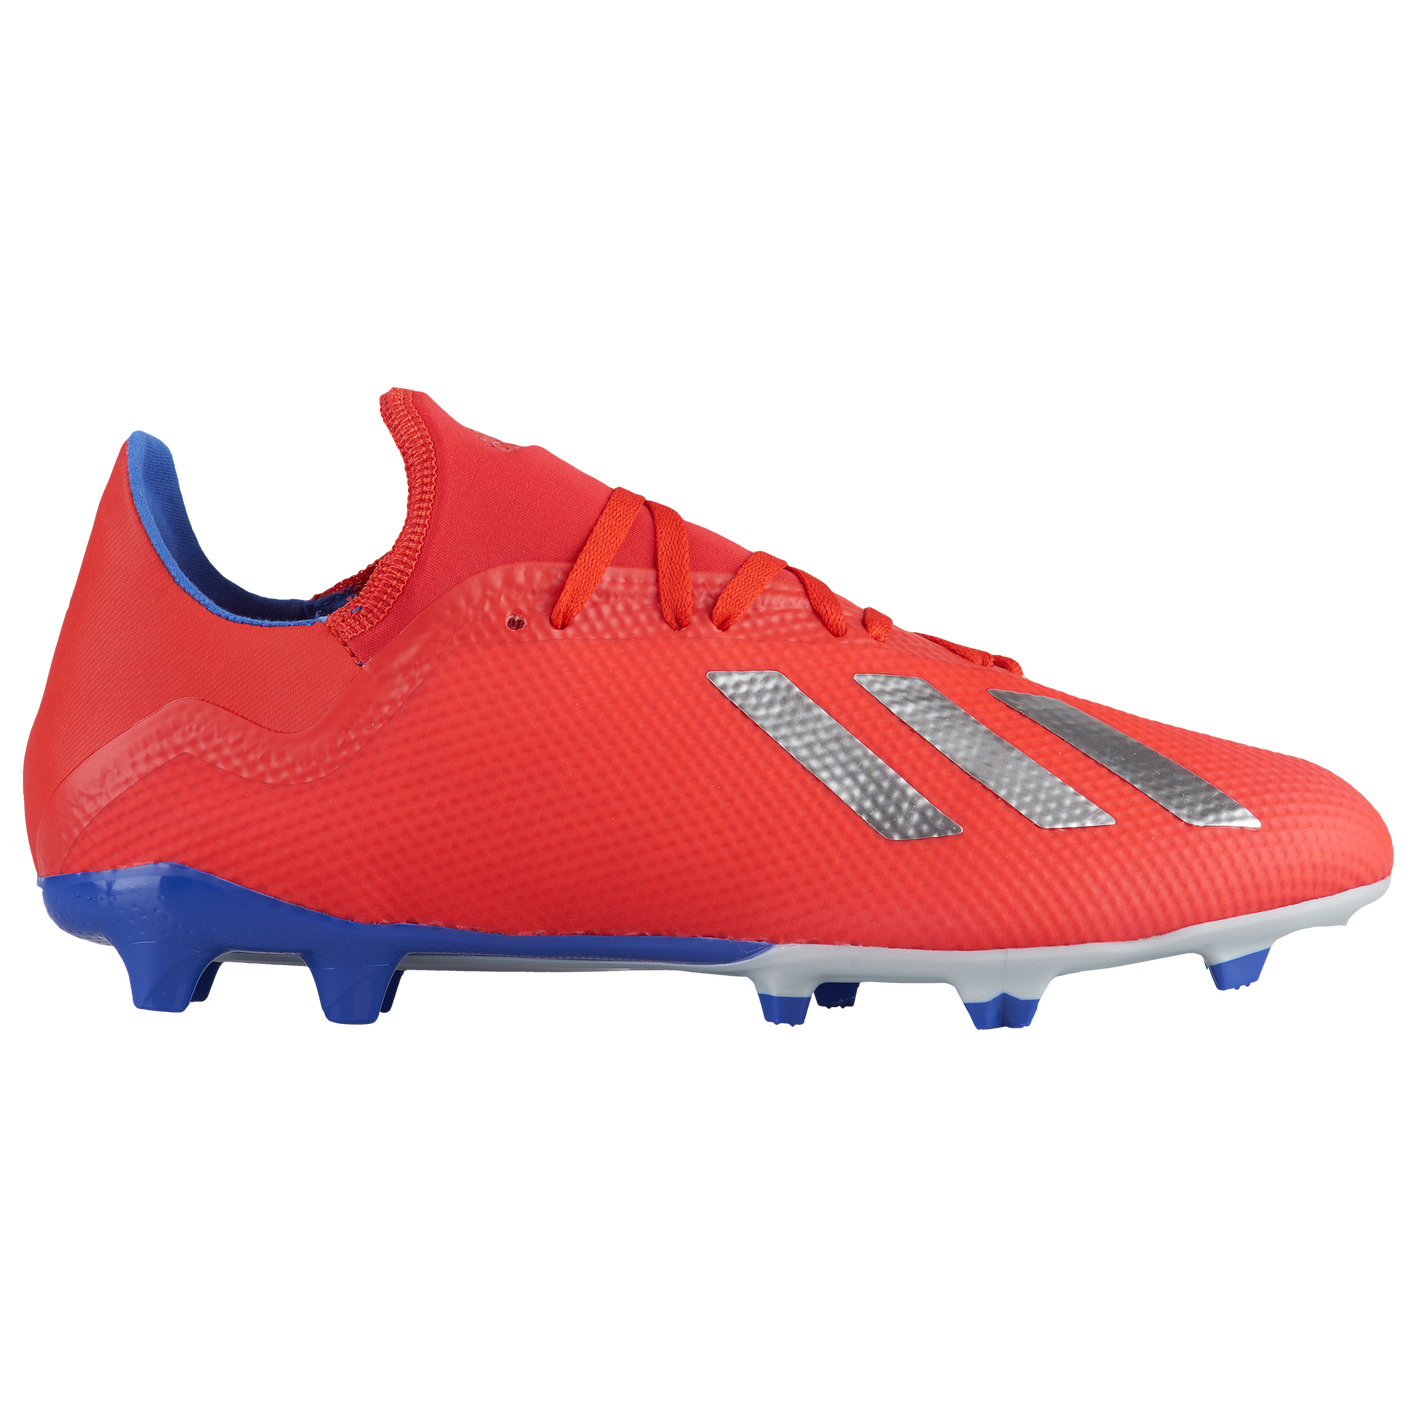 8c2bea398 adidas X 18.3 FG - Men's. $59.99 - $80.00. Product #: BB9367. Selected  Style: Active Red/Silver Metallic/Bold Blue ...